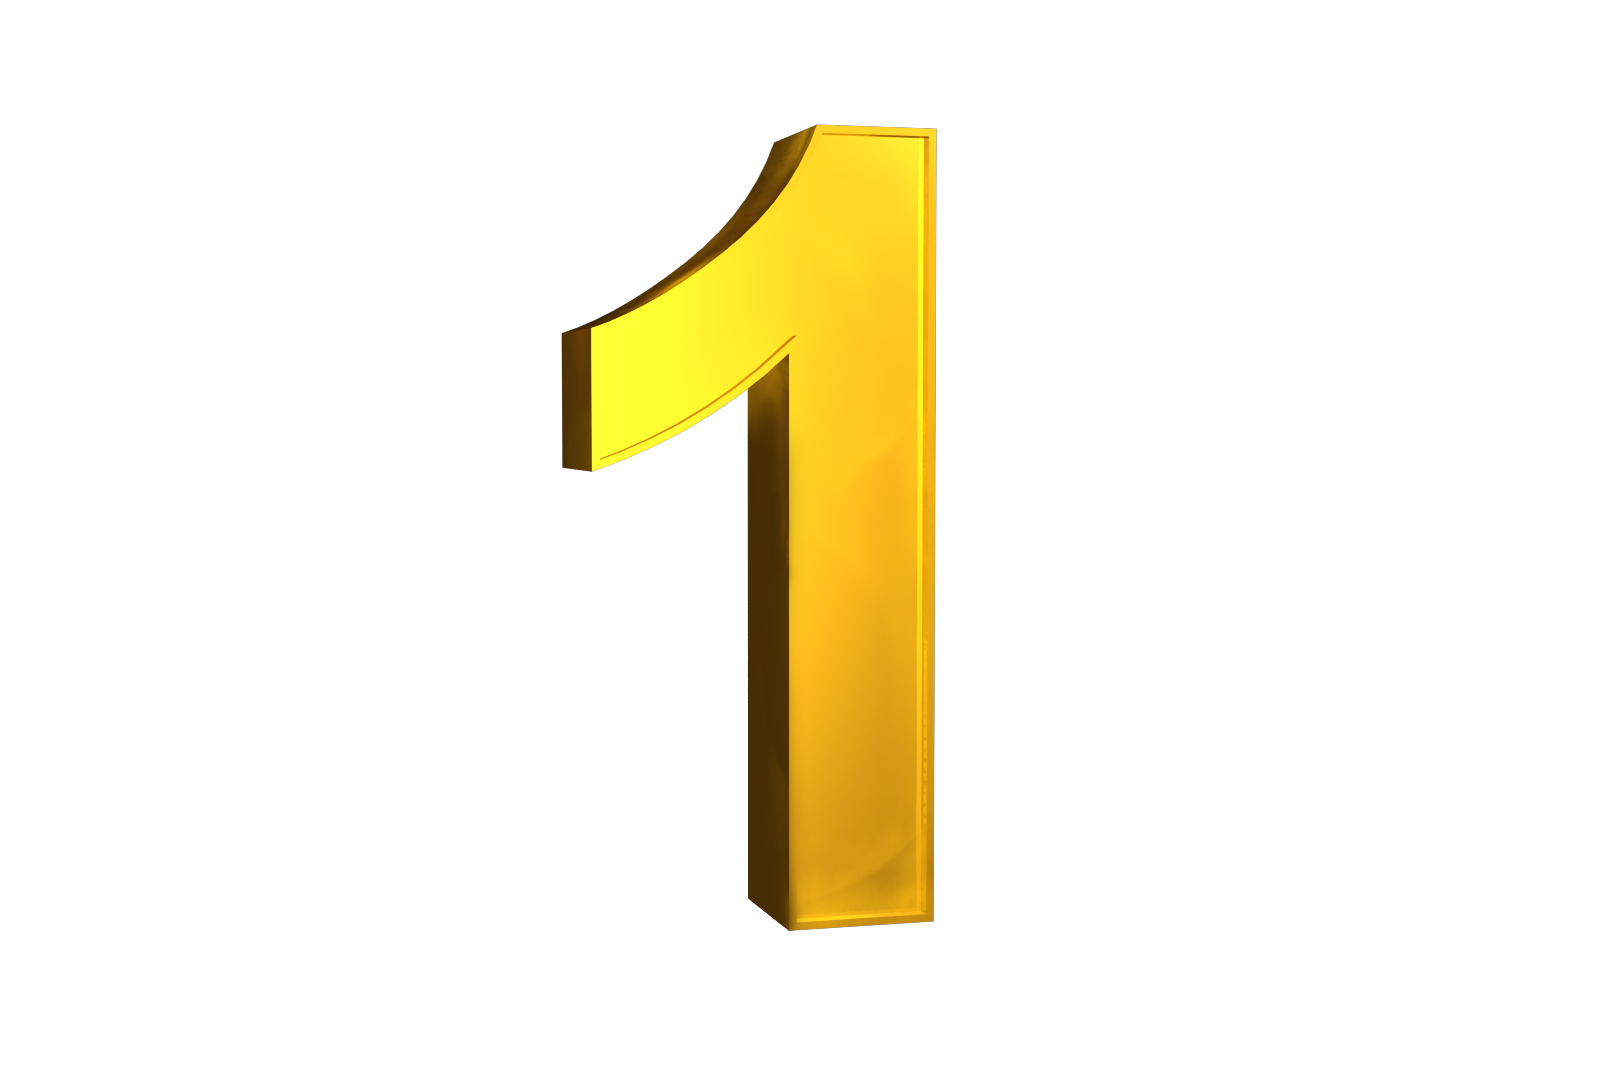 Number 1 png. Transparent pictures free icons